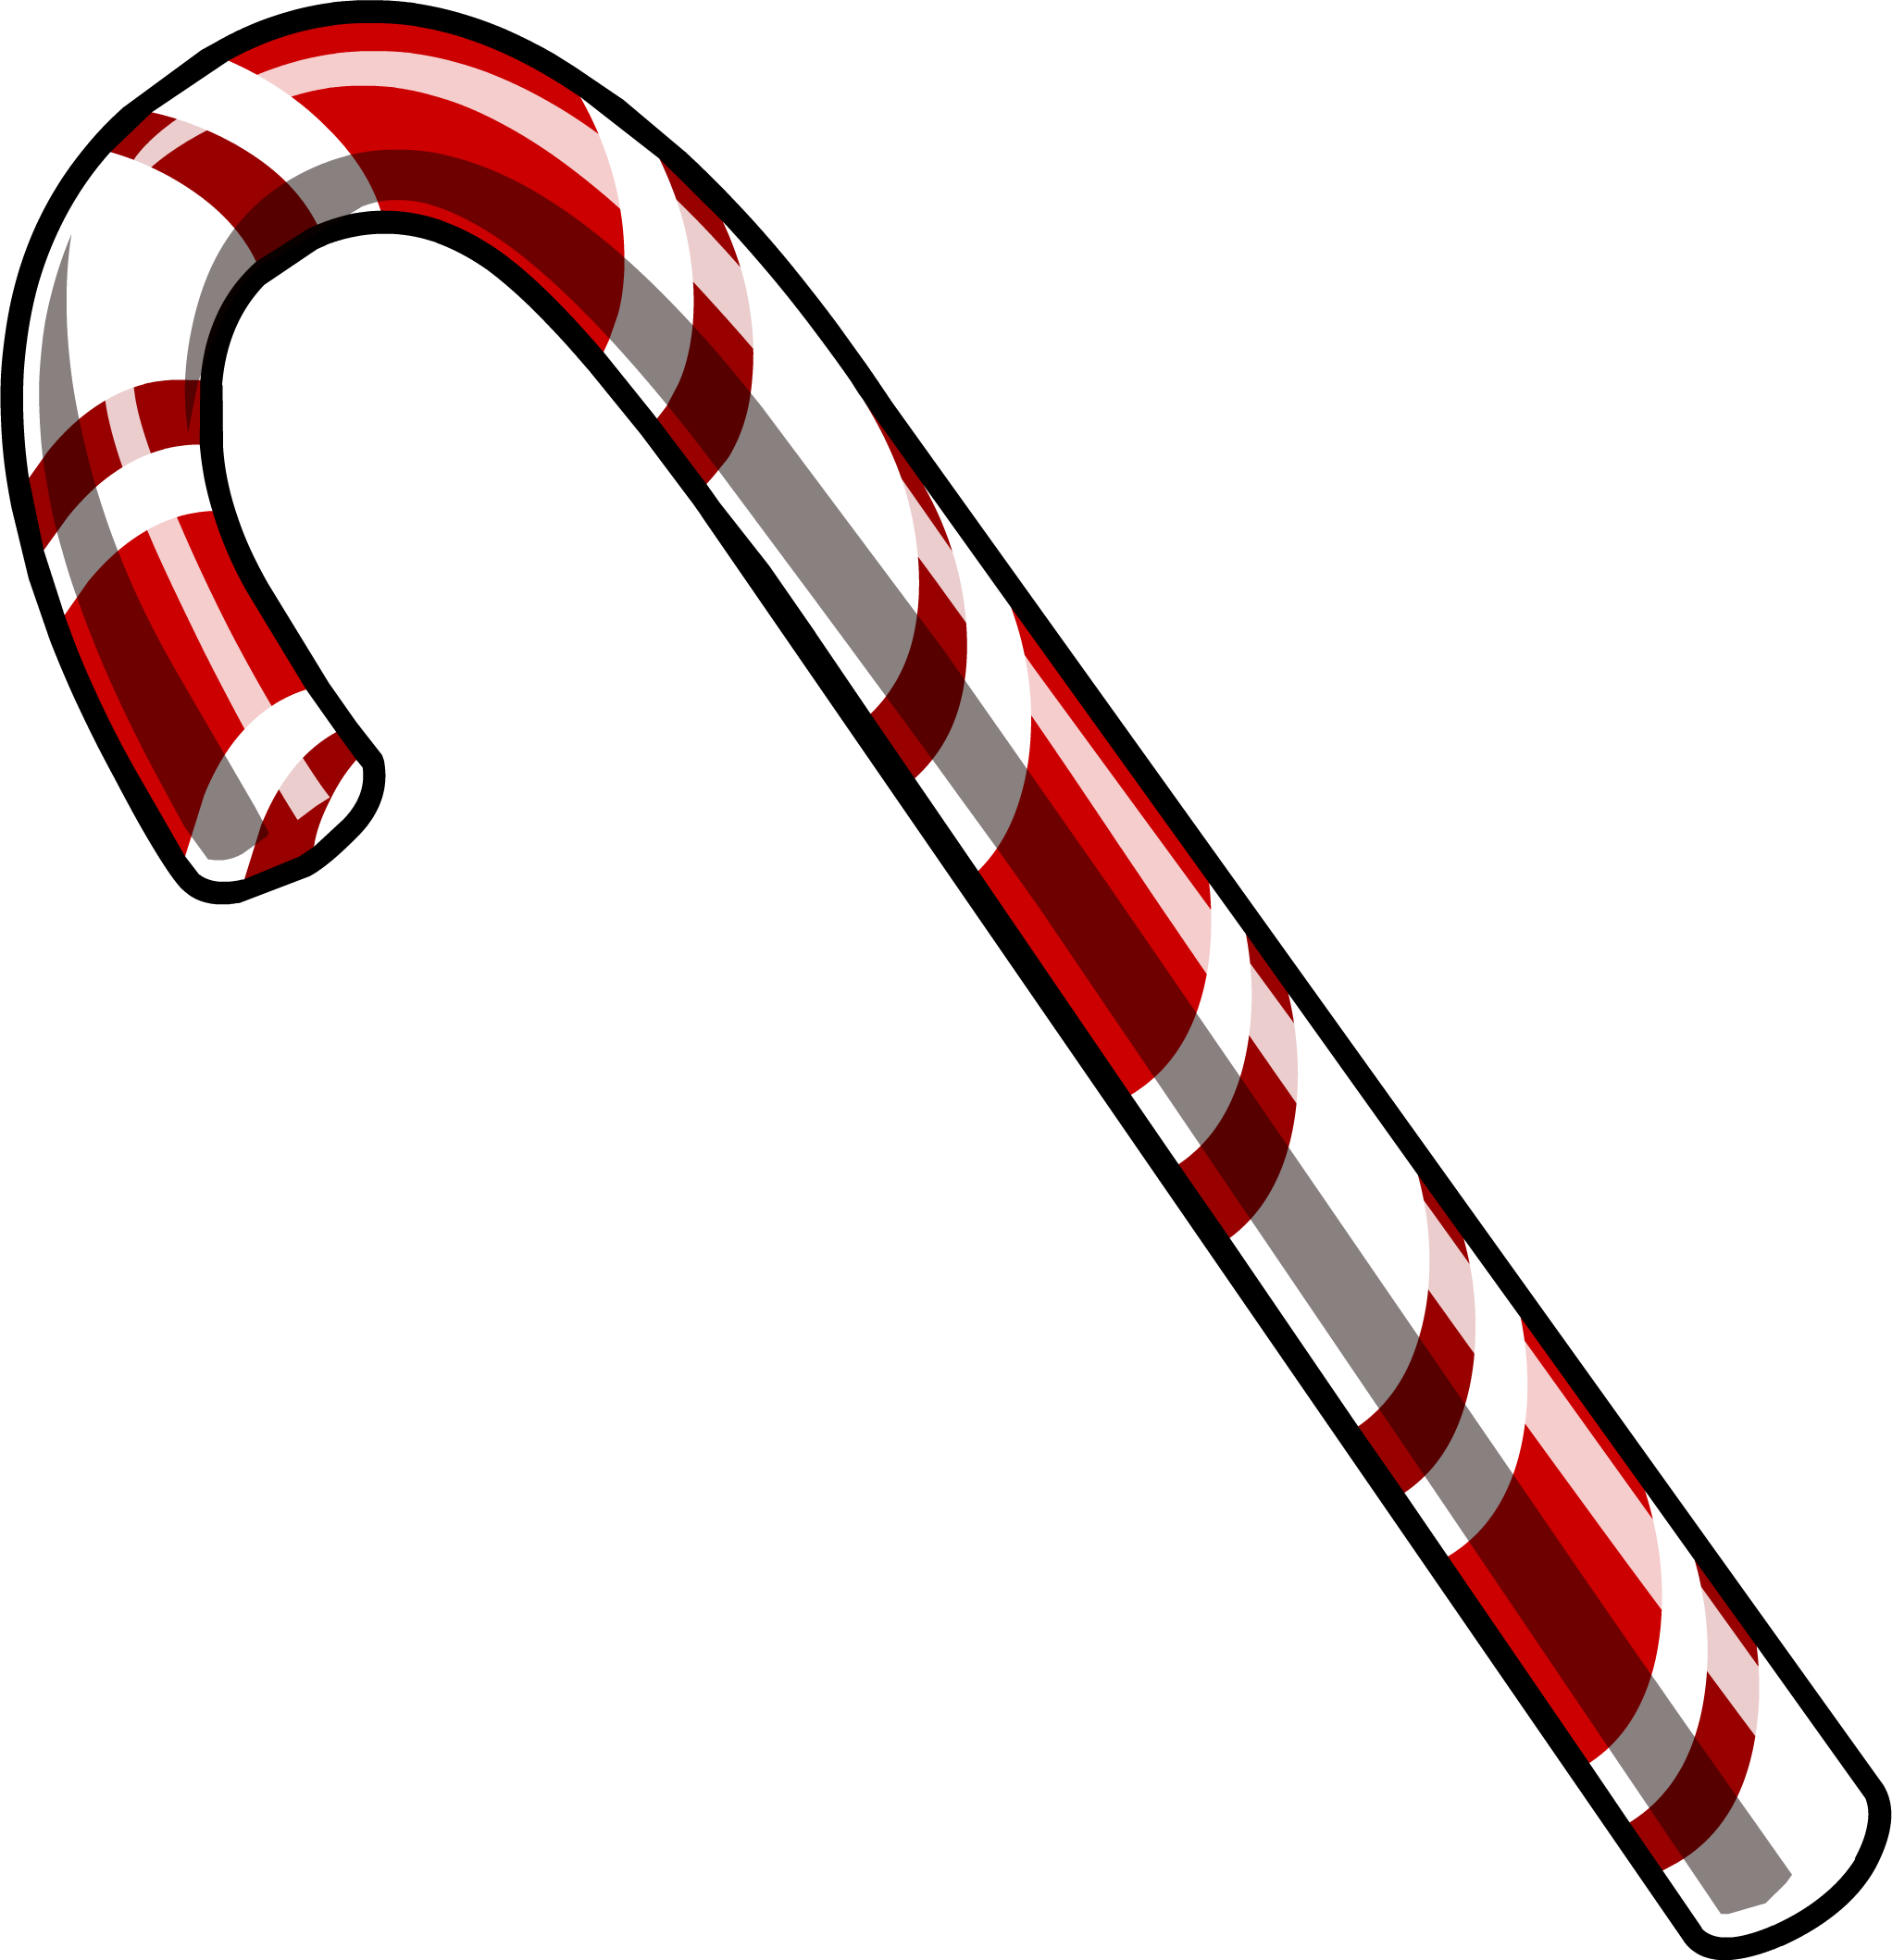 Candy cane .png. Png file mart